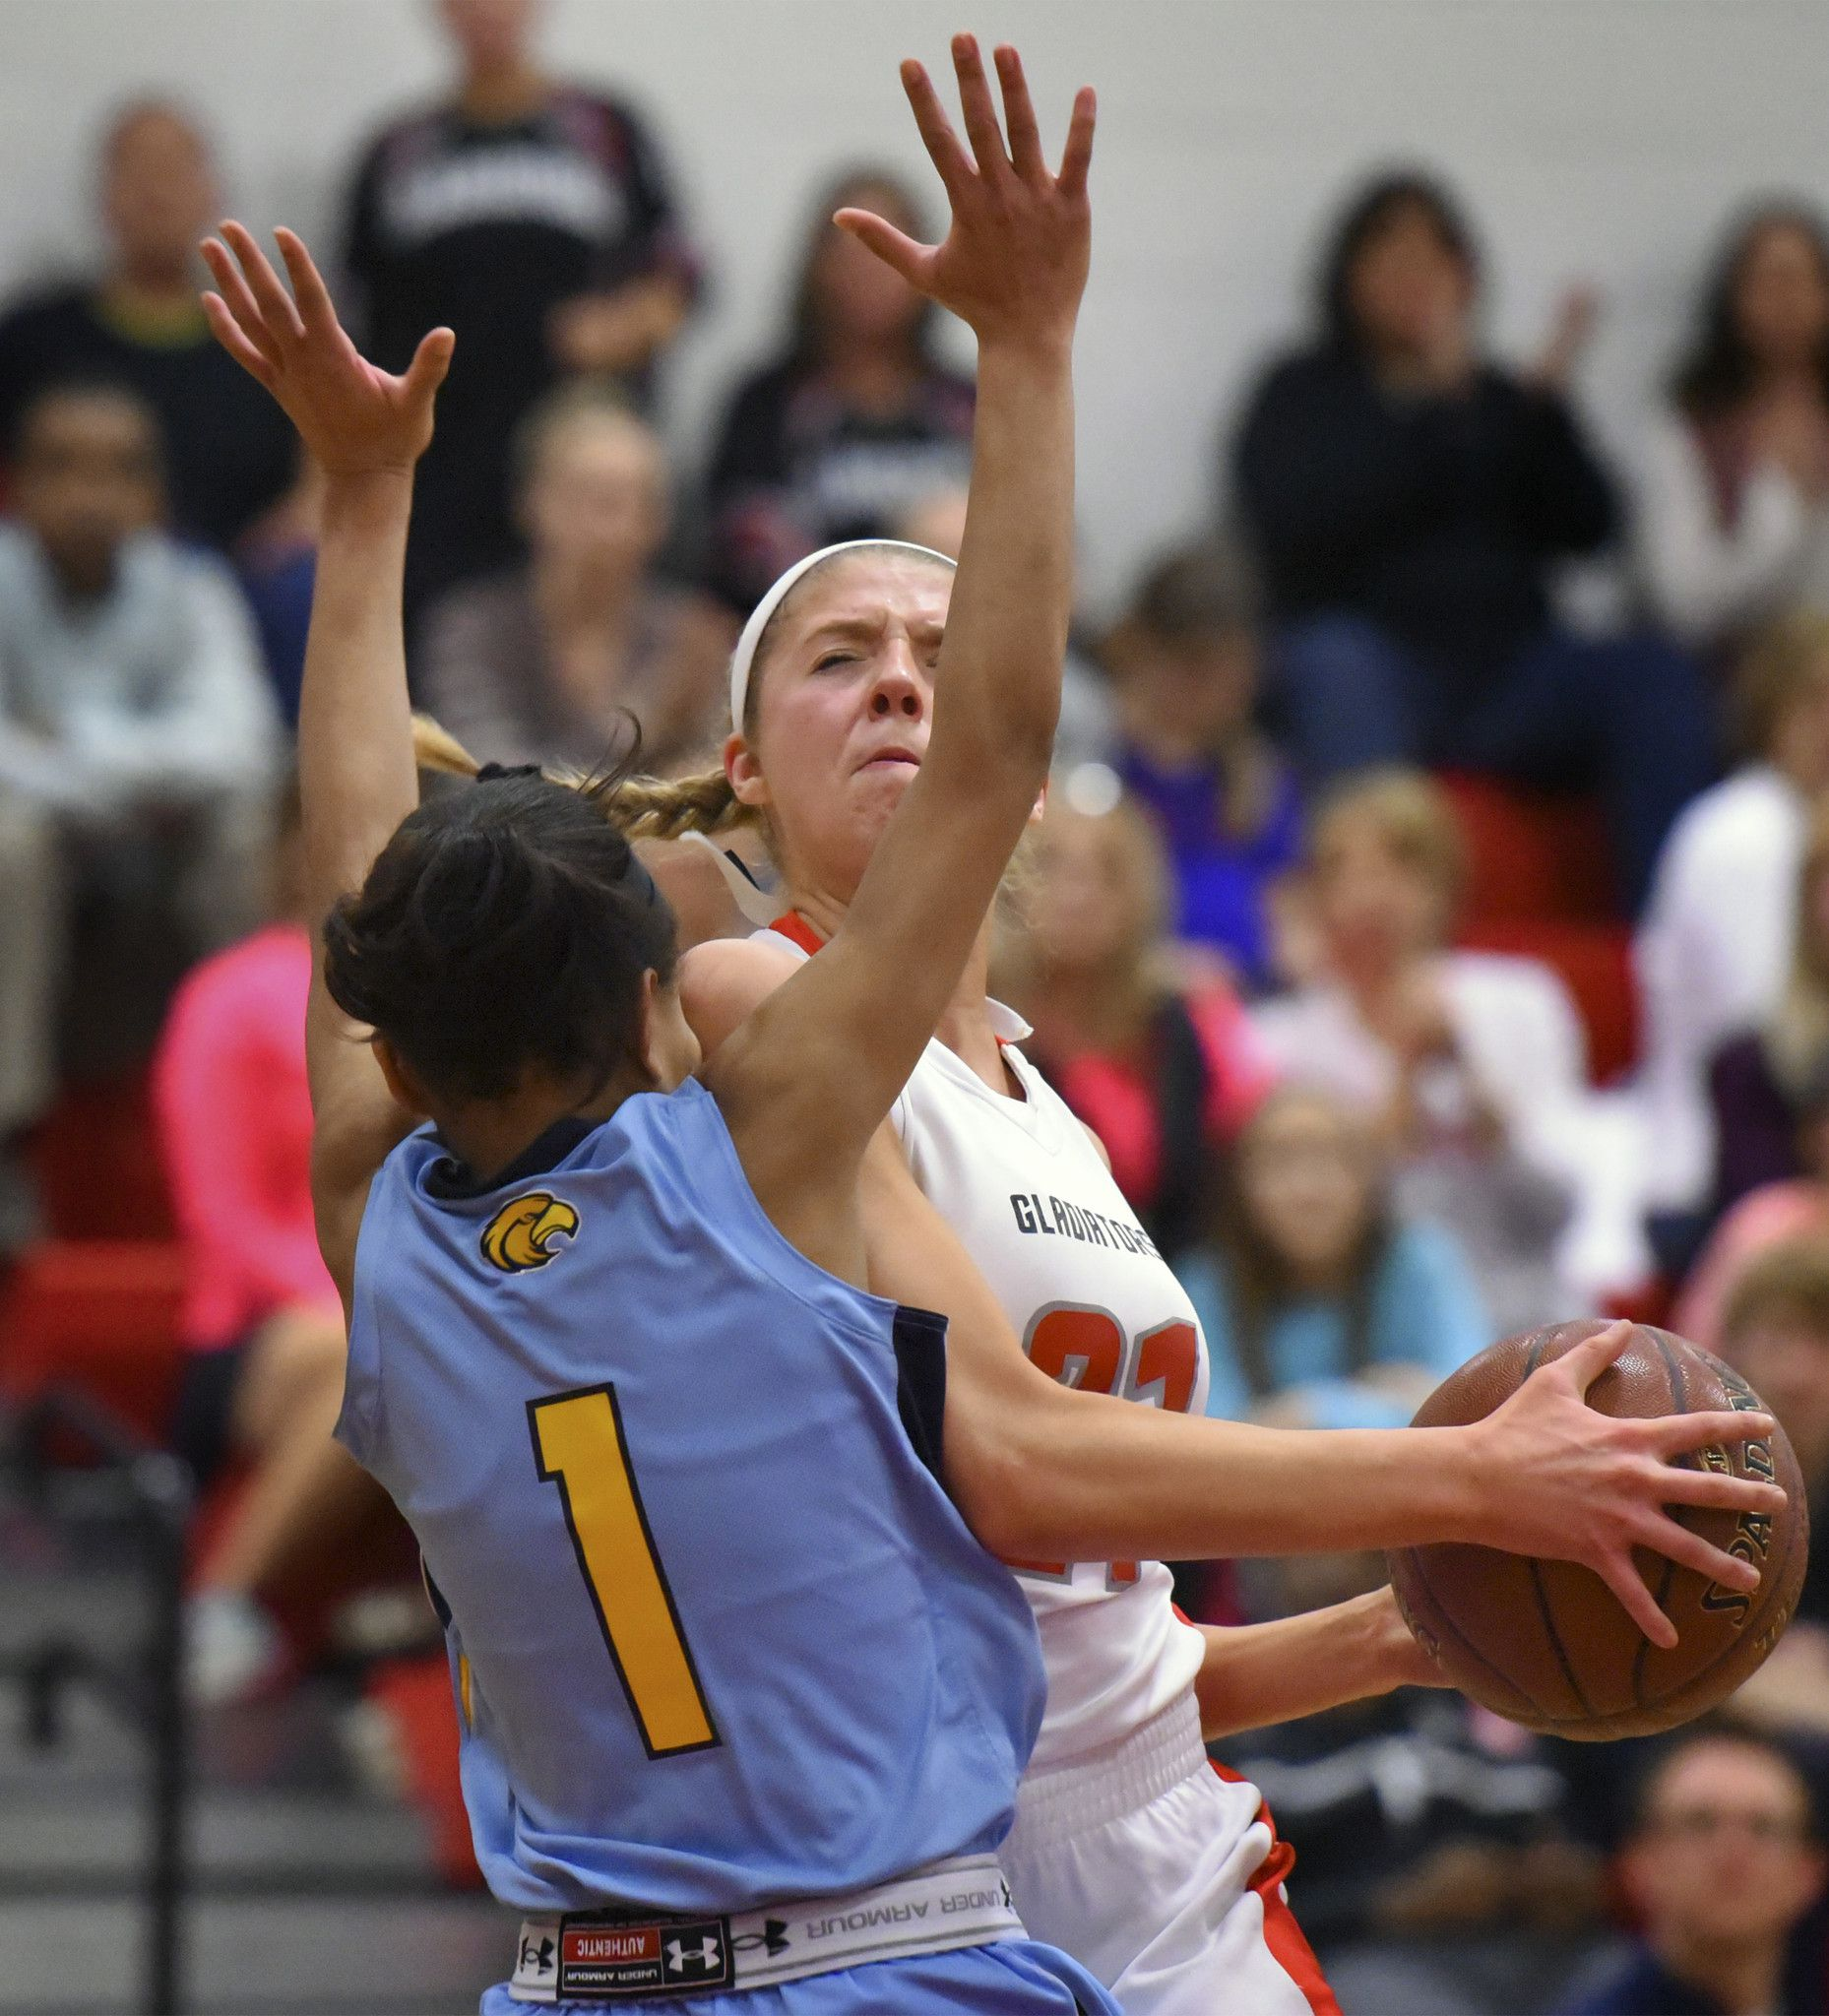 Https Www Baltimoresun Com Maryland Baltimore County Towson Ph Tt Tow Edge Girls Bball 0301 Pg Photogallery Html 2016 03 02t00 52 00z Https Www Baltimoresun Com Resizer Vfe Rgxpwf7 Qjqnwughr88vvdy Arc Anglerfish Arc2 Prod Tronc S3 Boris chen is the author of man's best friends (5.00 avg rating, 1 rating, 0 reviews), our cabin in the hills (5.00 avg rating, 1 rating, 1 review), and. https www baltimoresun com maryland